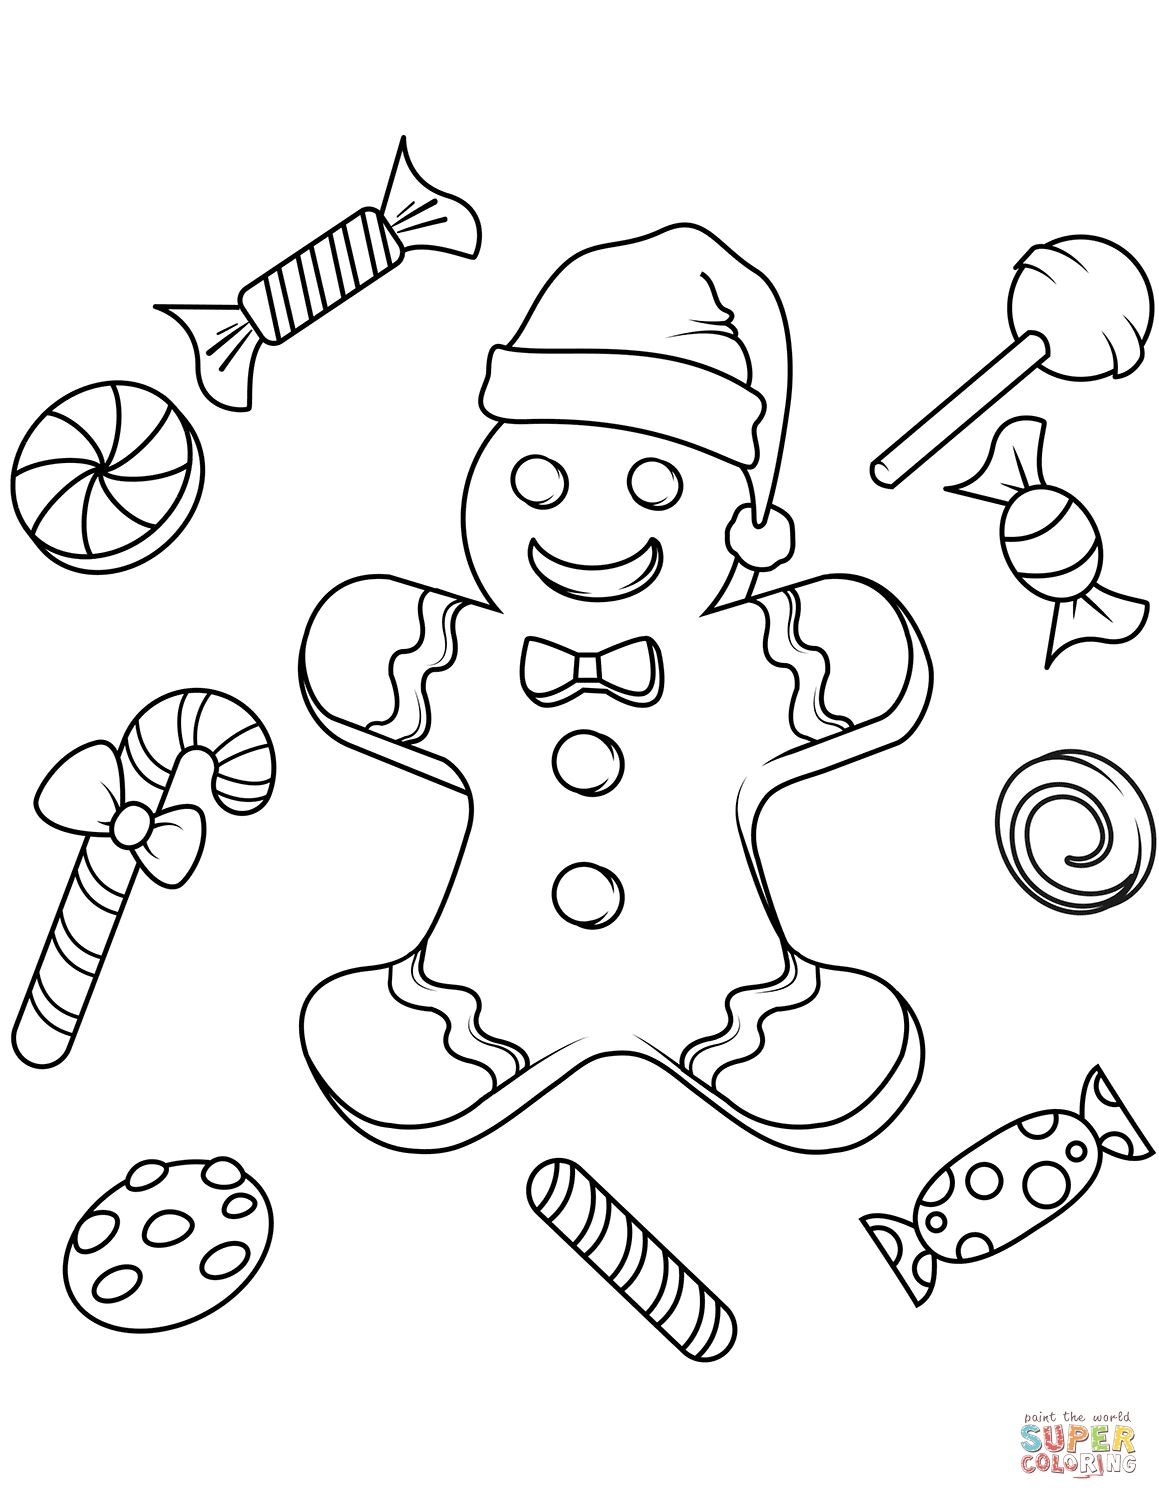 Gingerbread Coloring Pages Free Printable Gingerbread Man